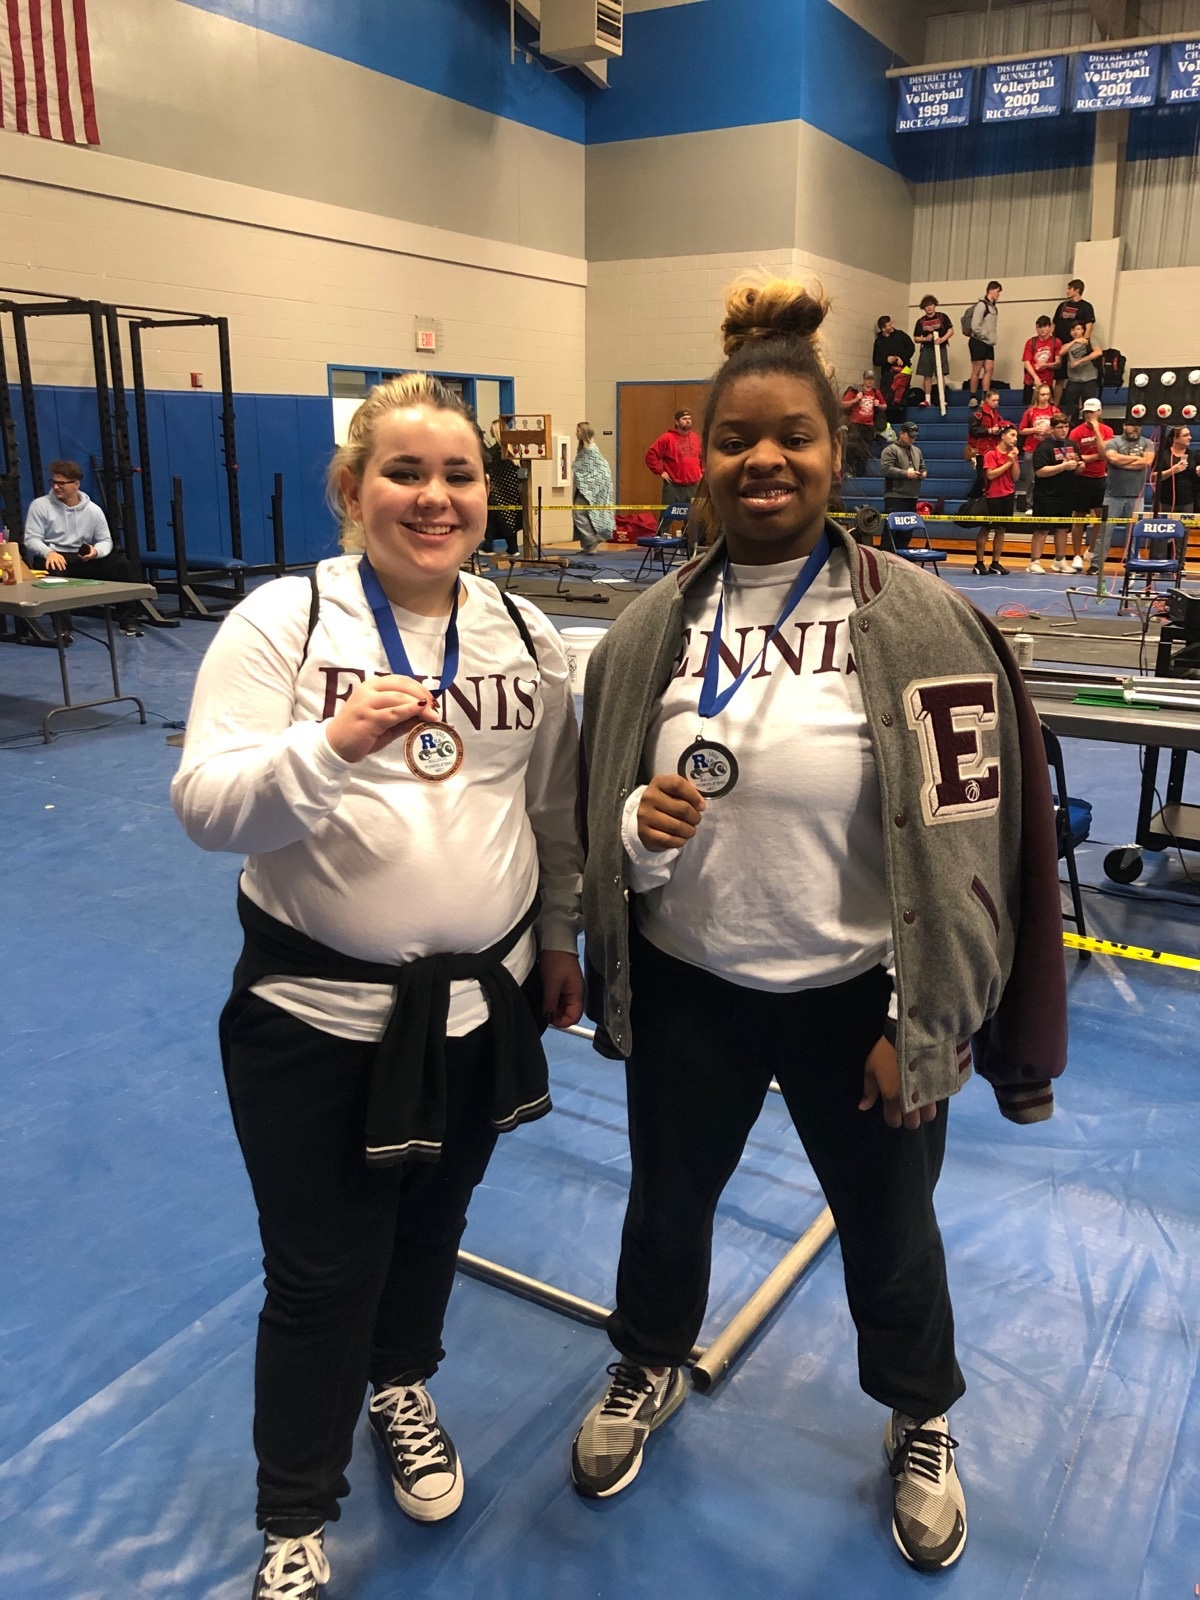 Ennis Women's Powerlifting Team competes extremely well at the Rice Meet this past Saturday